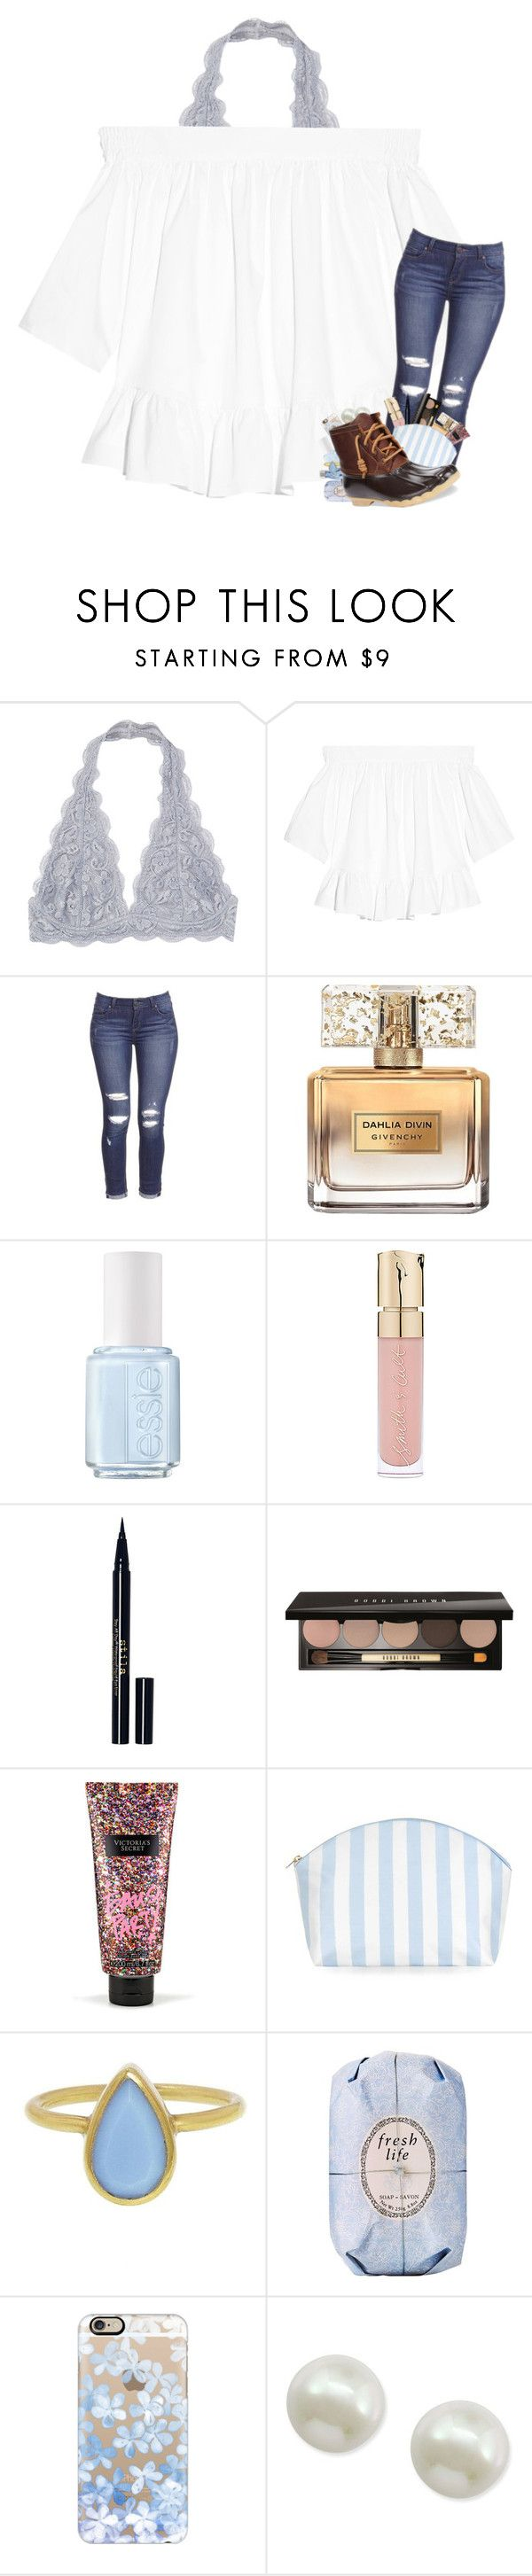 """- inhale courage   exhale fear -"" by kat-attack ❤ liked on Polyvore featuring Elizabeth and James, Givenchy, Essie, Smith & Cult, Stila, Bobbi Brown Cosmetics, Victoria's Secret, Catherine & Jean, Annette Ferdinandsen and Fresh"